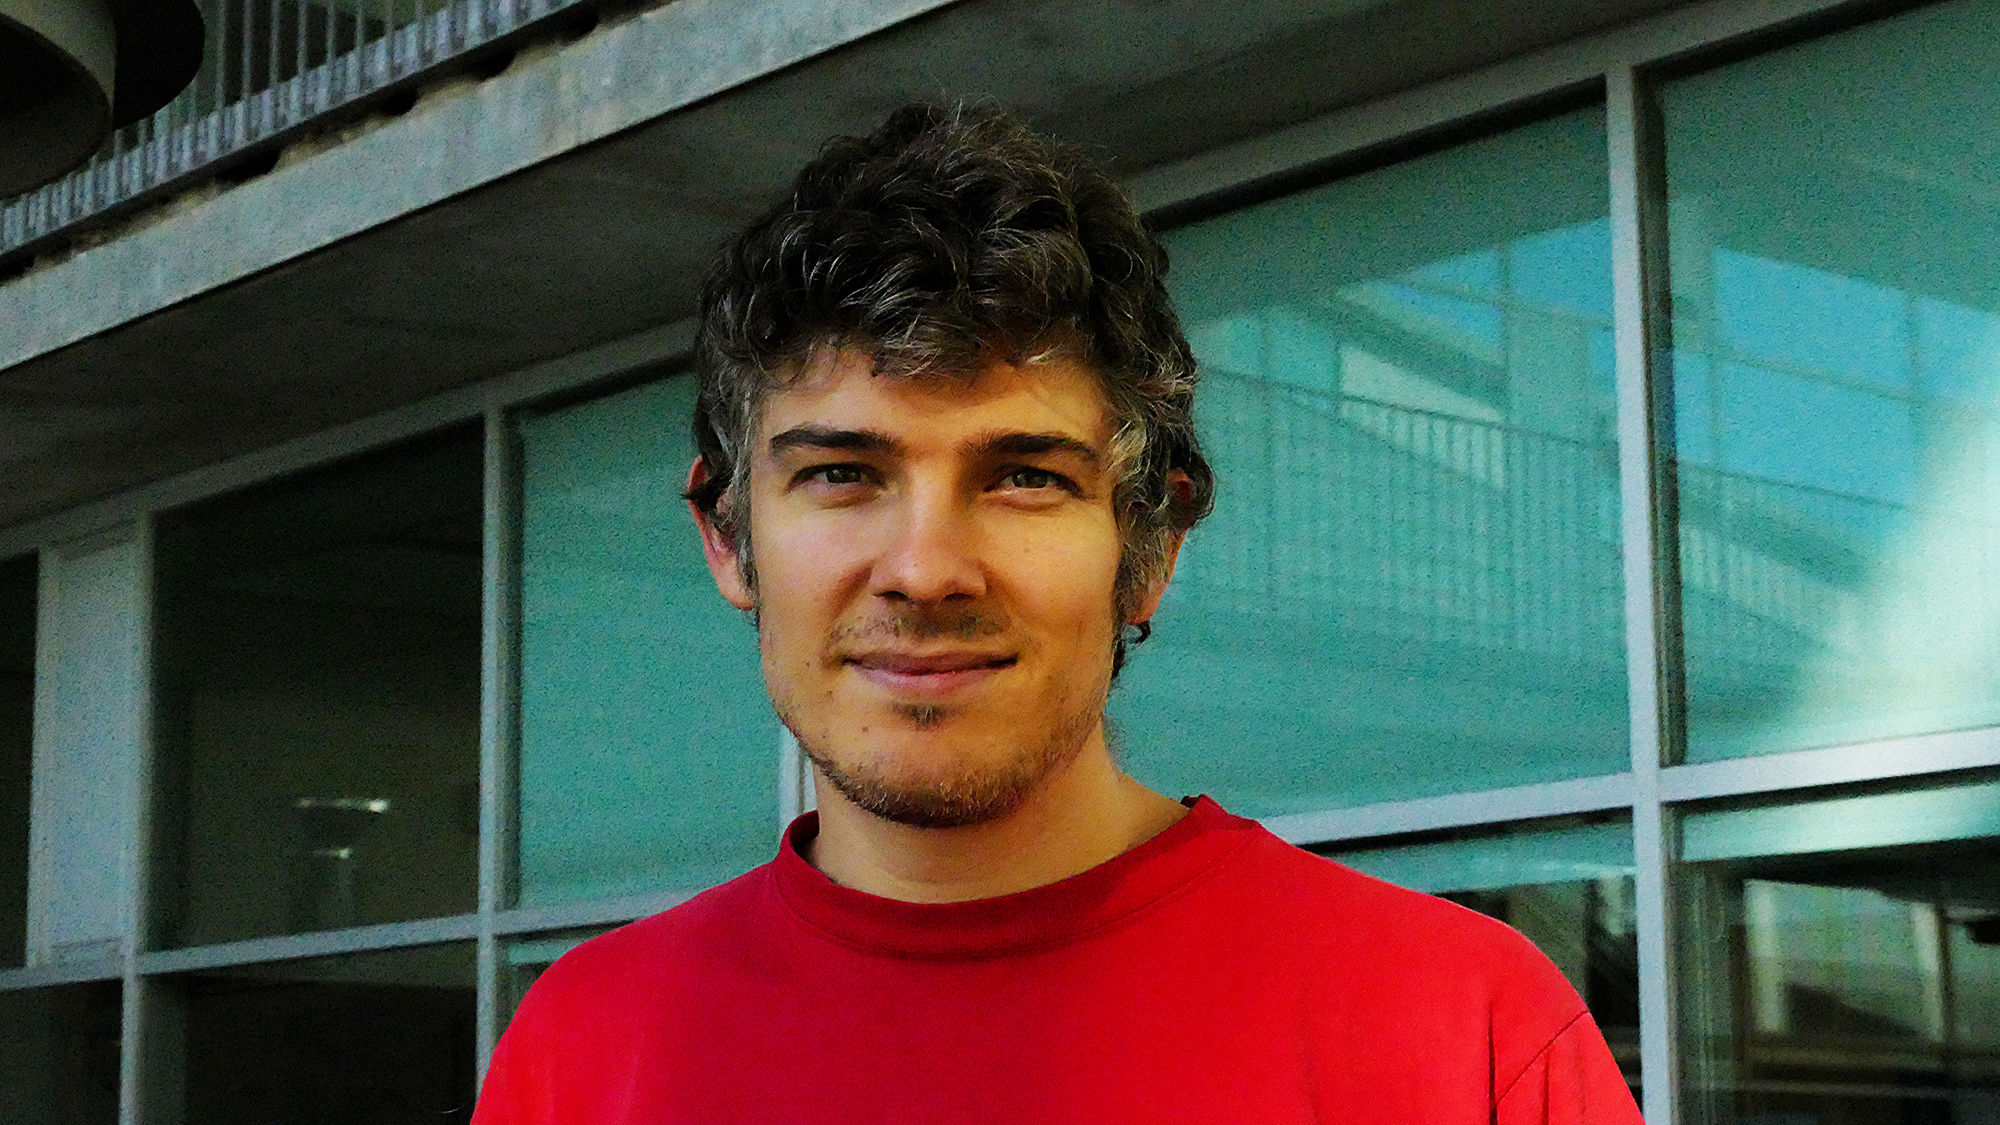 Marcos Francisco Perez, who received his PhD from the UPF, doing his research at the CRG, has received one of the eight honourable mentions of the International Birnstiel Awards.